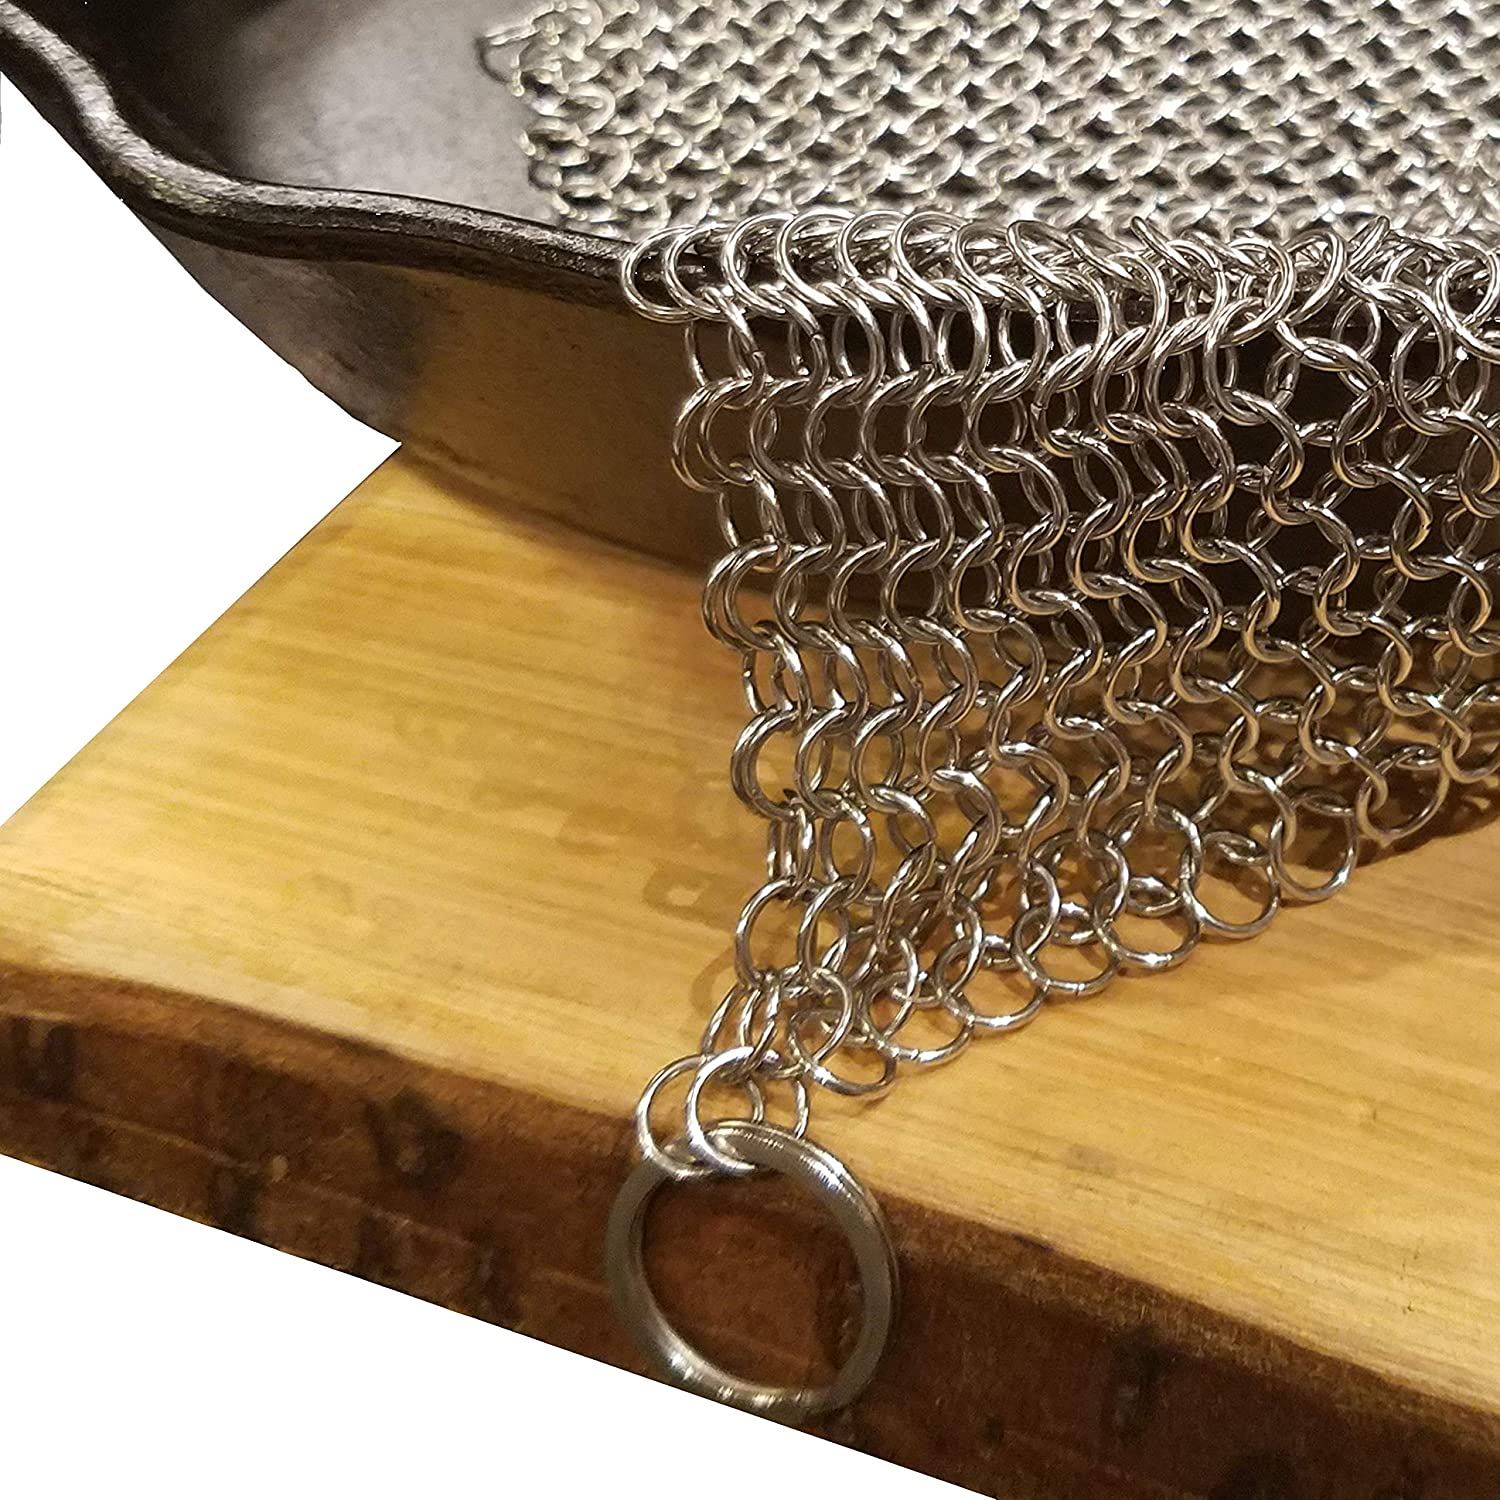 Extra Large (XXXL) Cast Iron Chainmail Scrubber For Cleaning Your Cast Iron Pan, Skillet, Griddle, Dutch Oven, Wok. Safe on Seasoning. Massive 8x8 Stainless Steel.